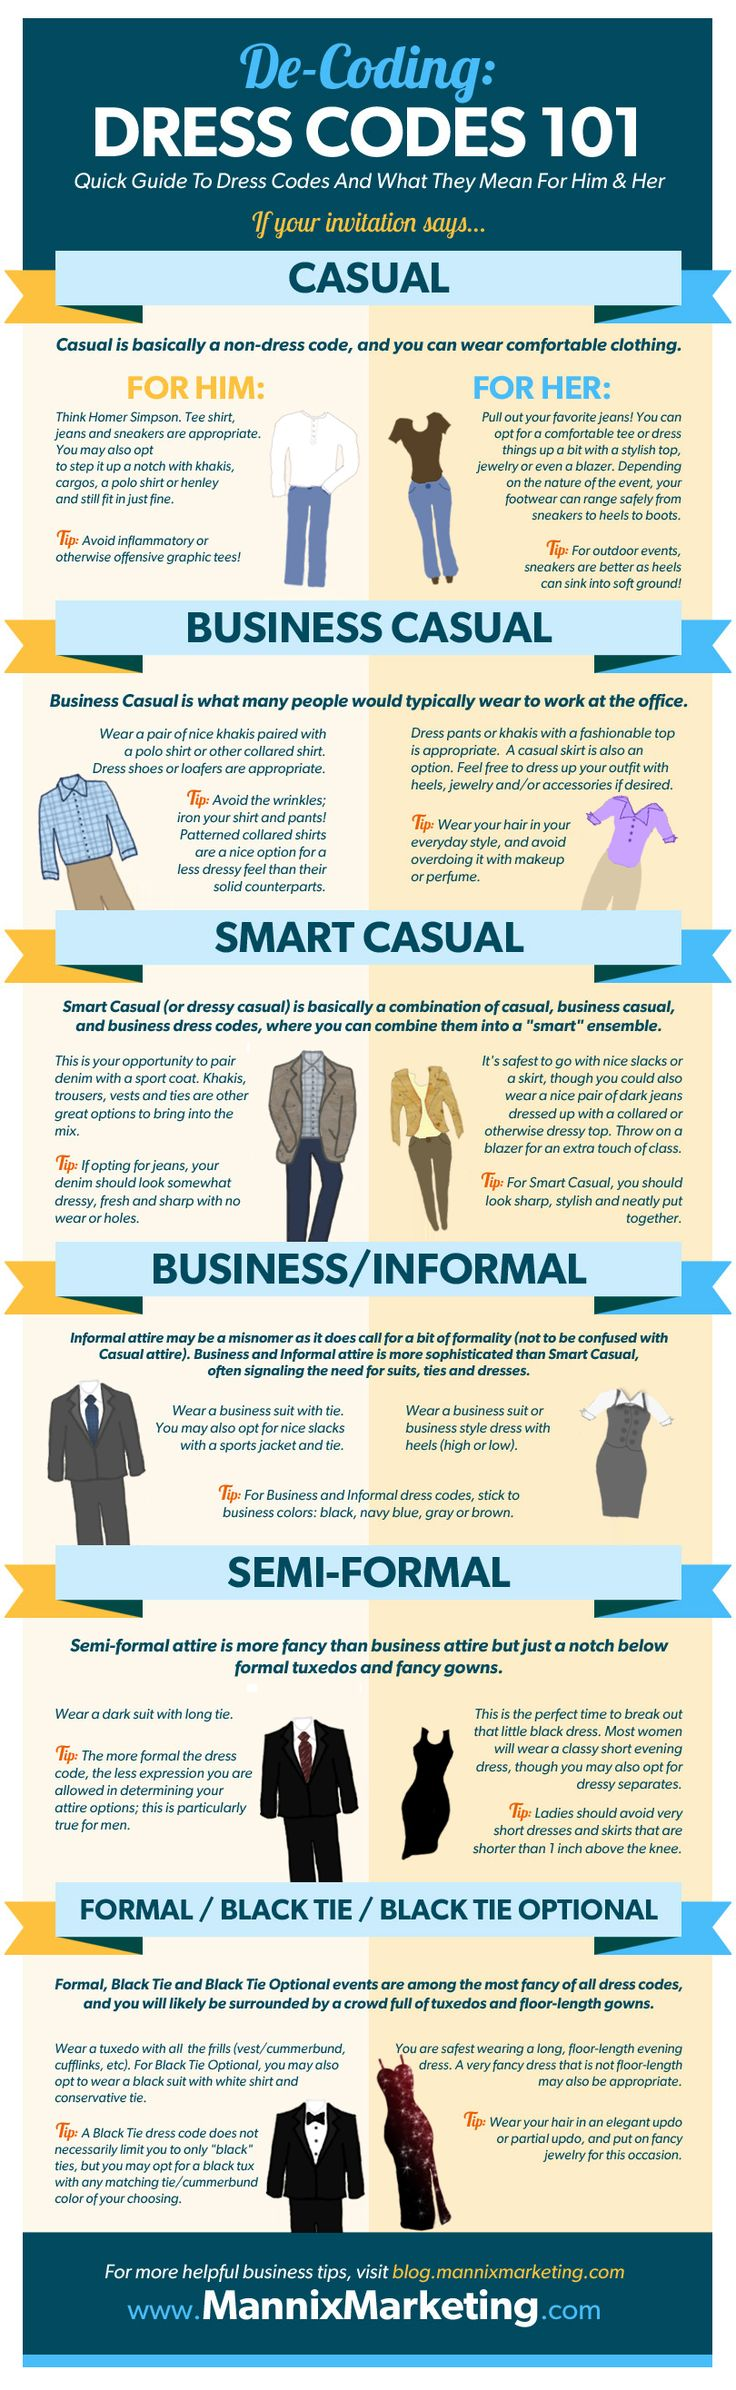 Dress Codes & What They Mean [Infographic] - His & Her Guide To Appropriate Attire For Each Dress Code - so useful for all those MBA activities